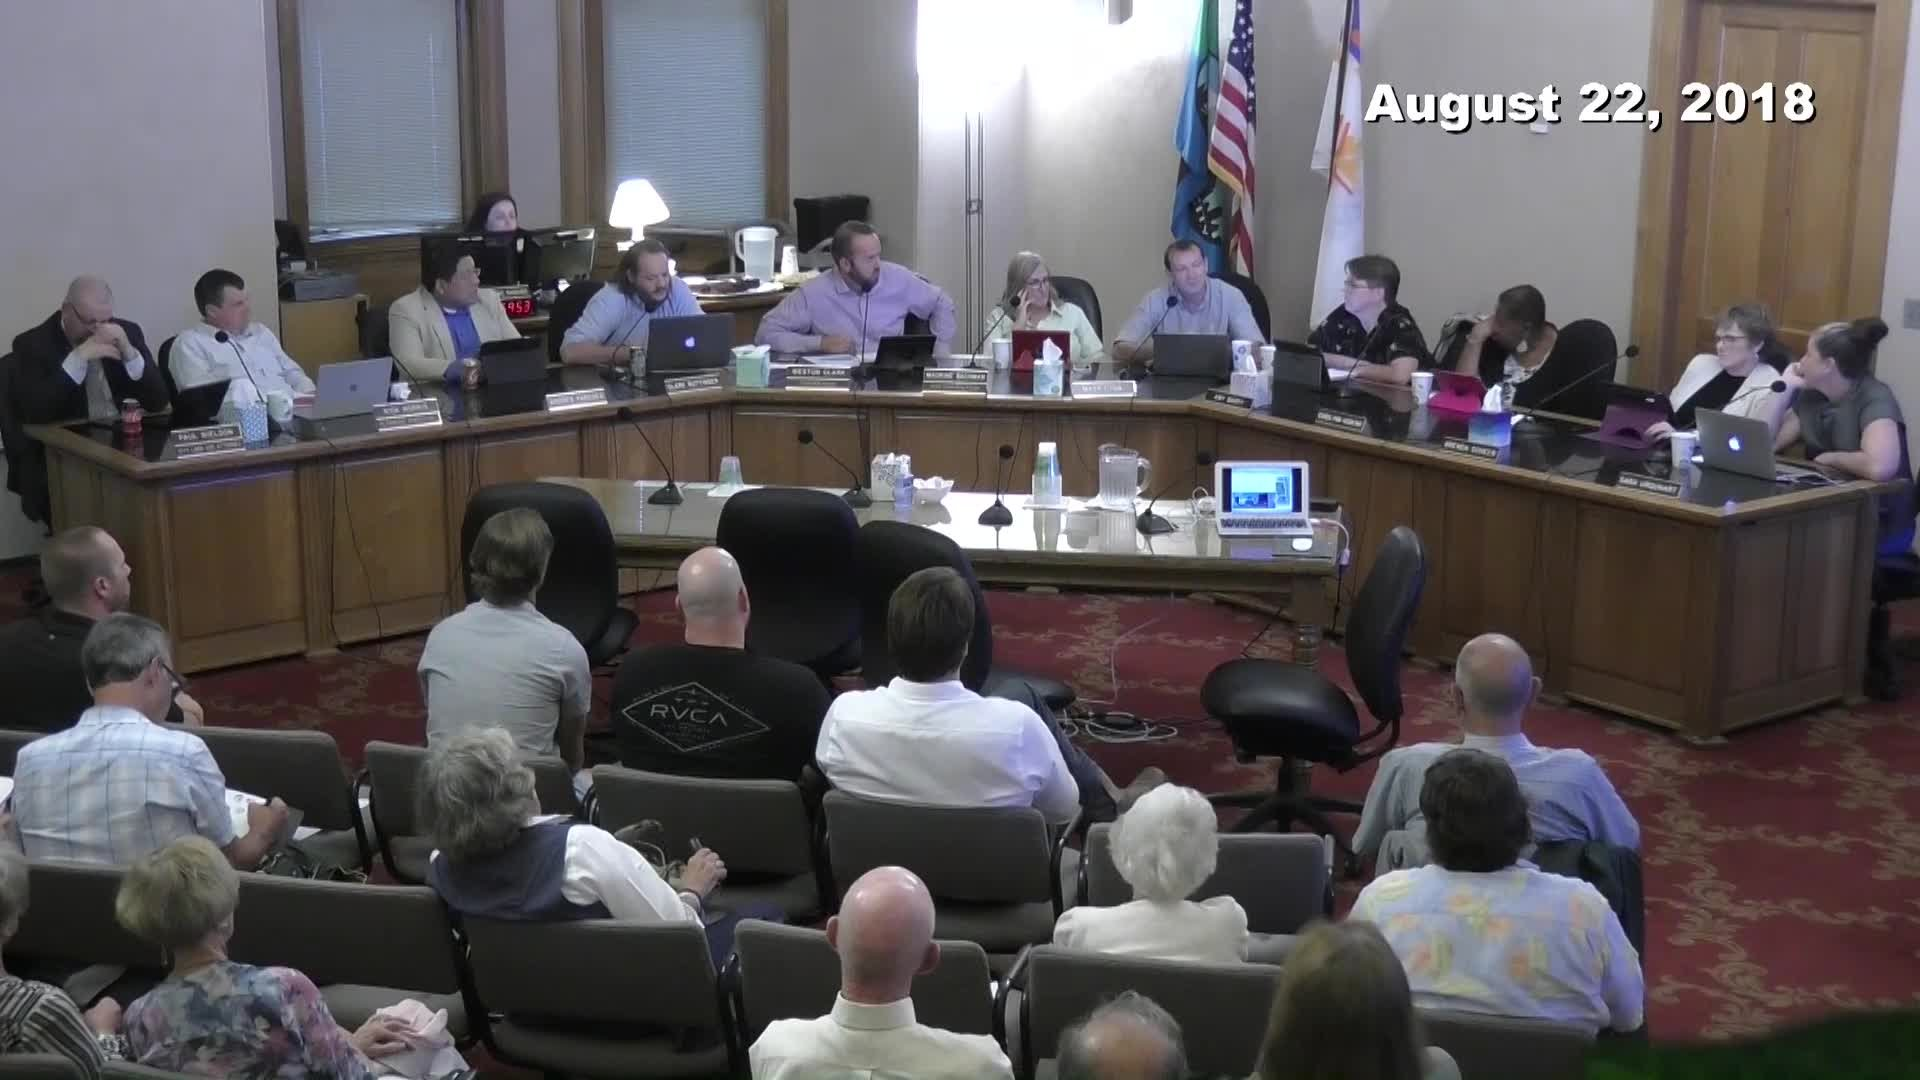 Planning Commission Meeting - 08/22/2018